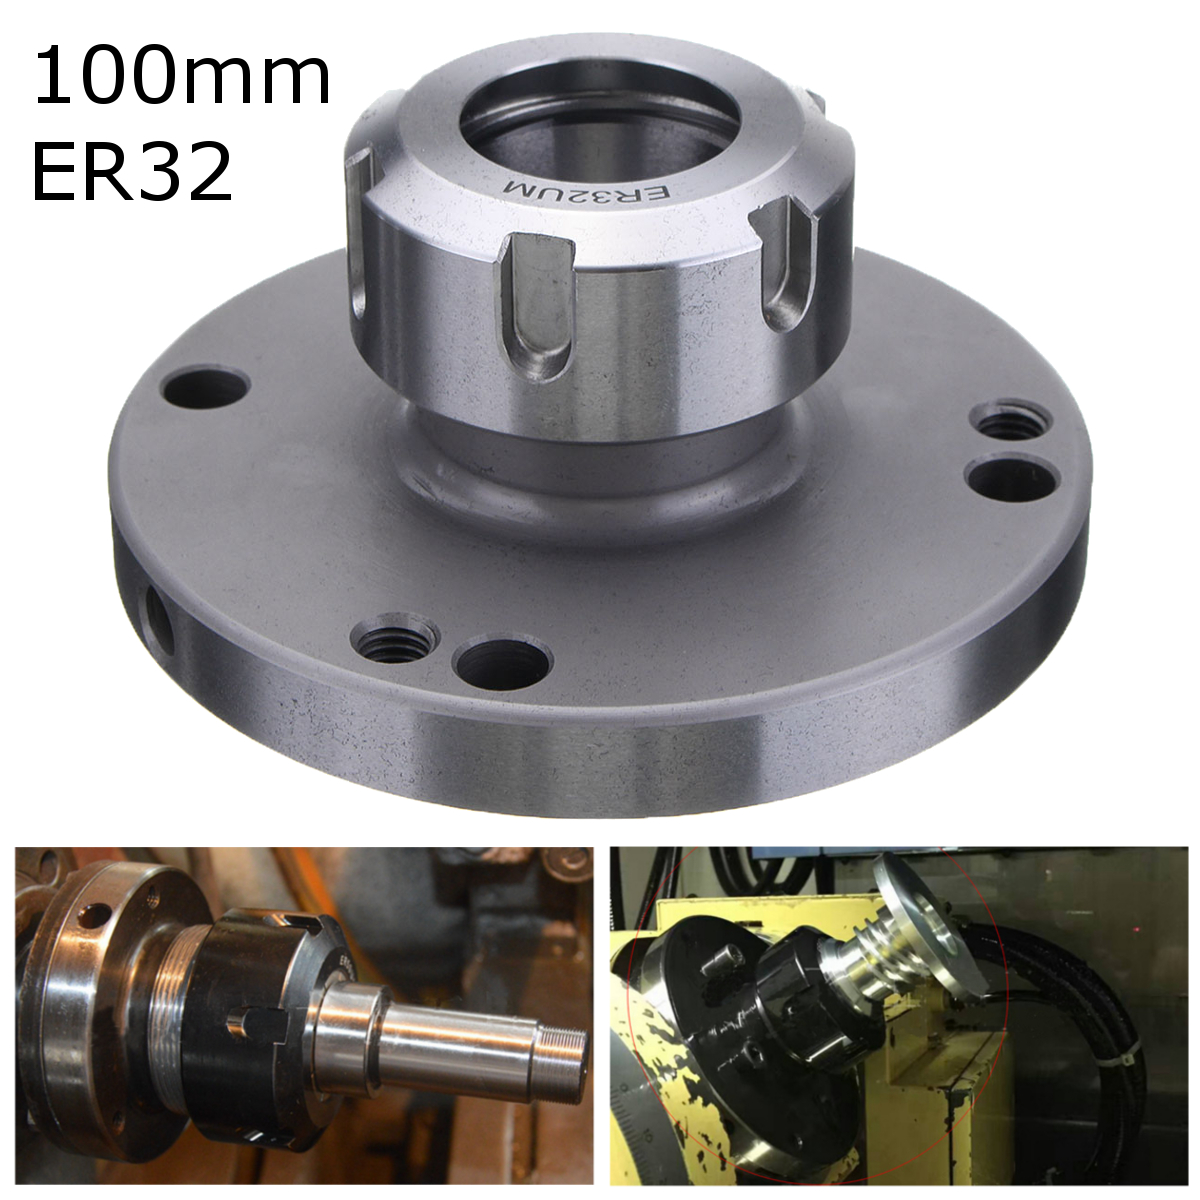 ER-32 Collet Chuck 100MM DIAMETER Compact Lathe Tight Tolerance For Milling брюки accelerate tight